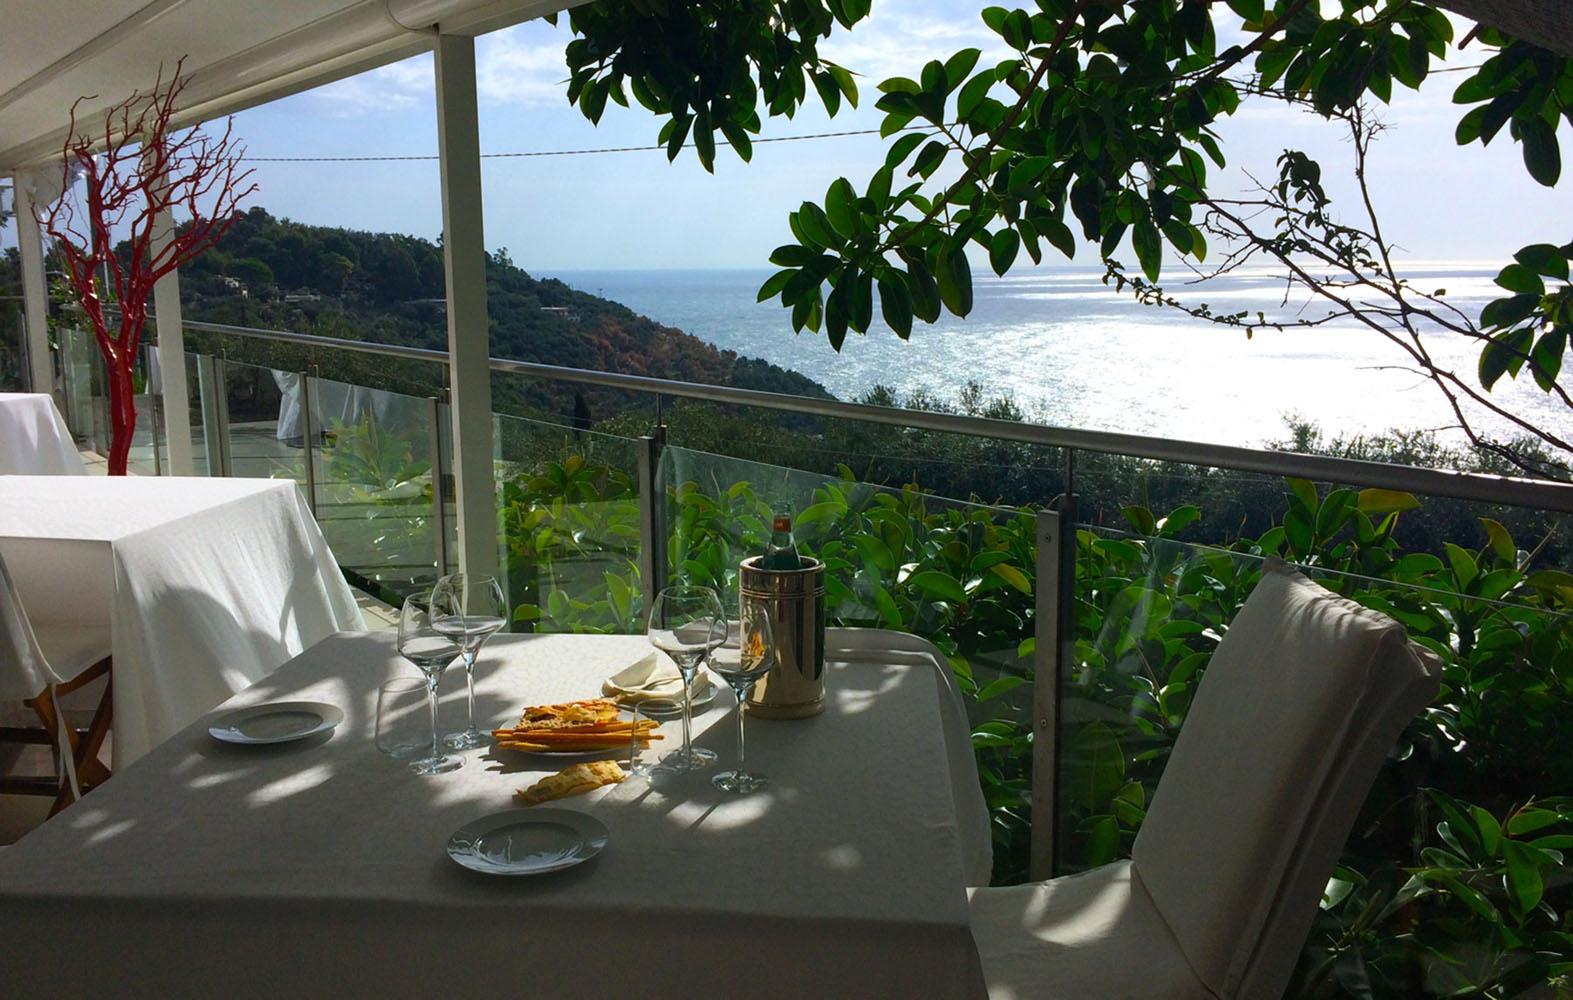 A view of the Mediterranean from the restaurant Quattro Passi in Sorrento, Italy.